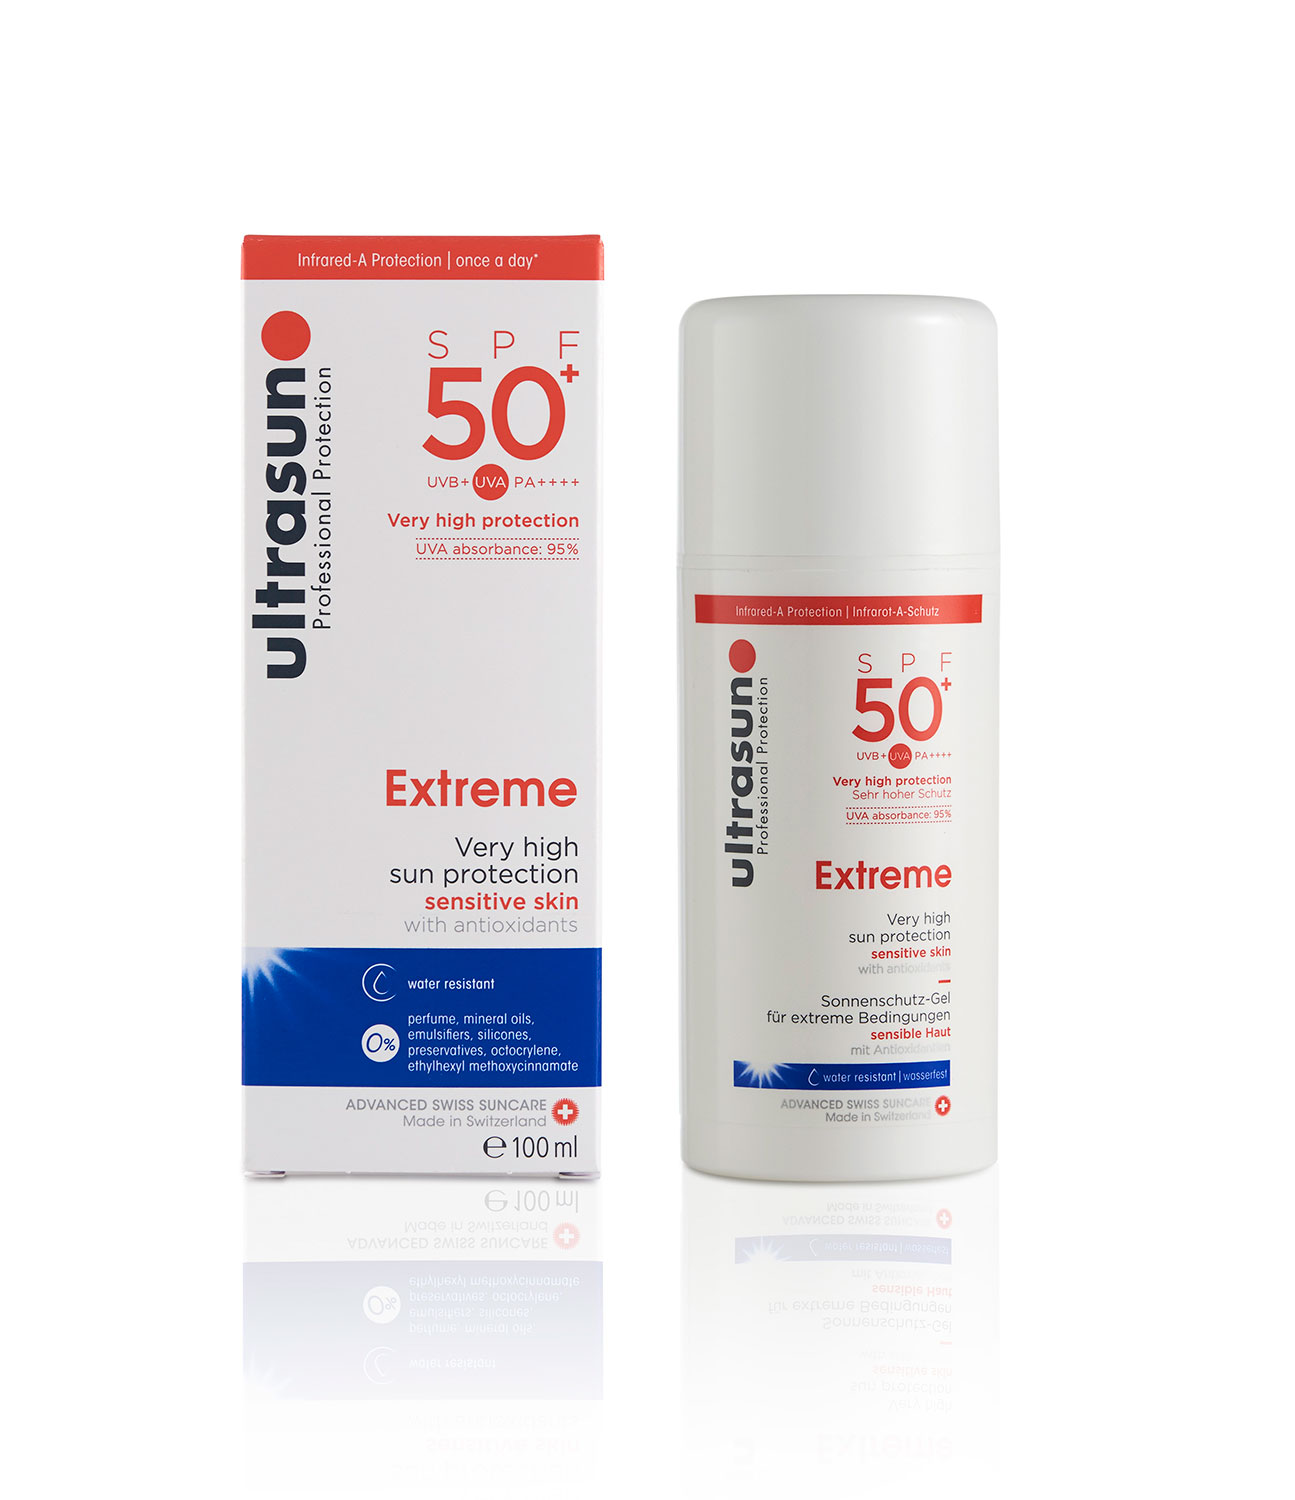 Ultrasun Extreme Protection Sunscreen 50SPF